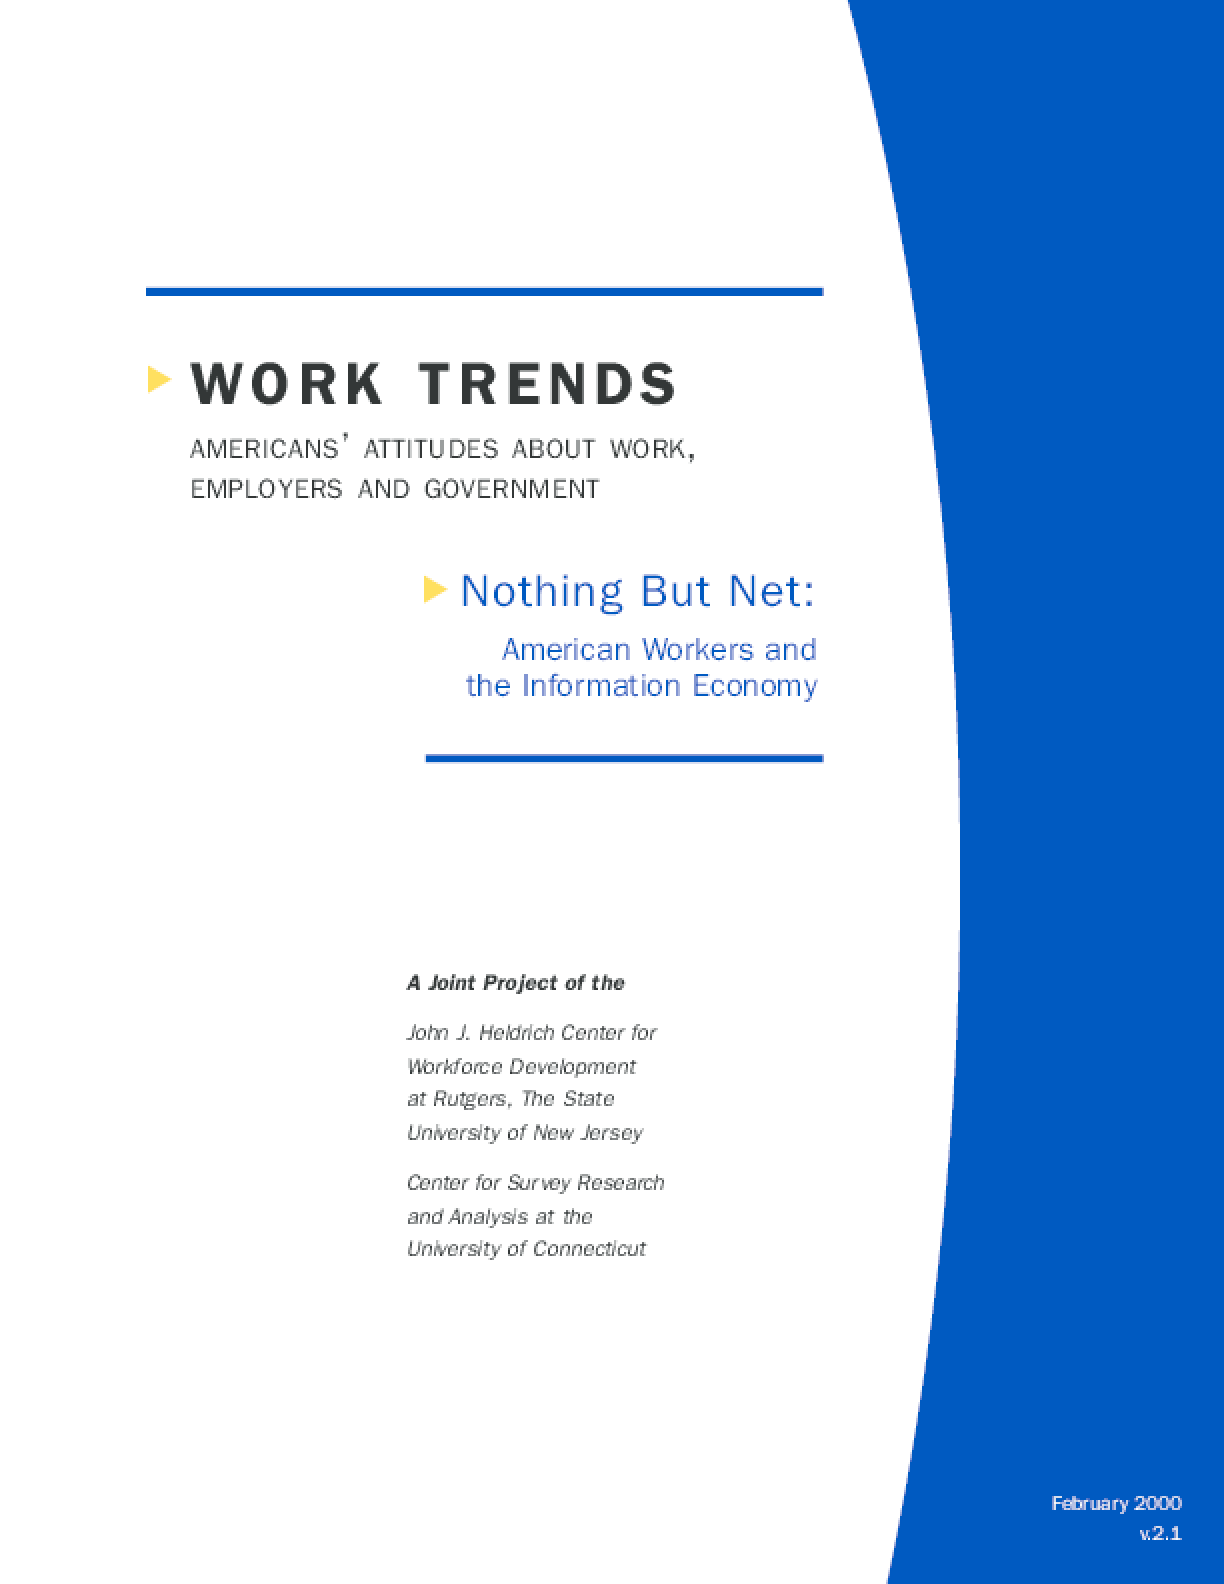 Nothing But Net: American Workers and the Information Economy